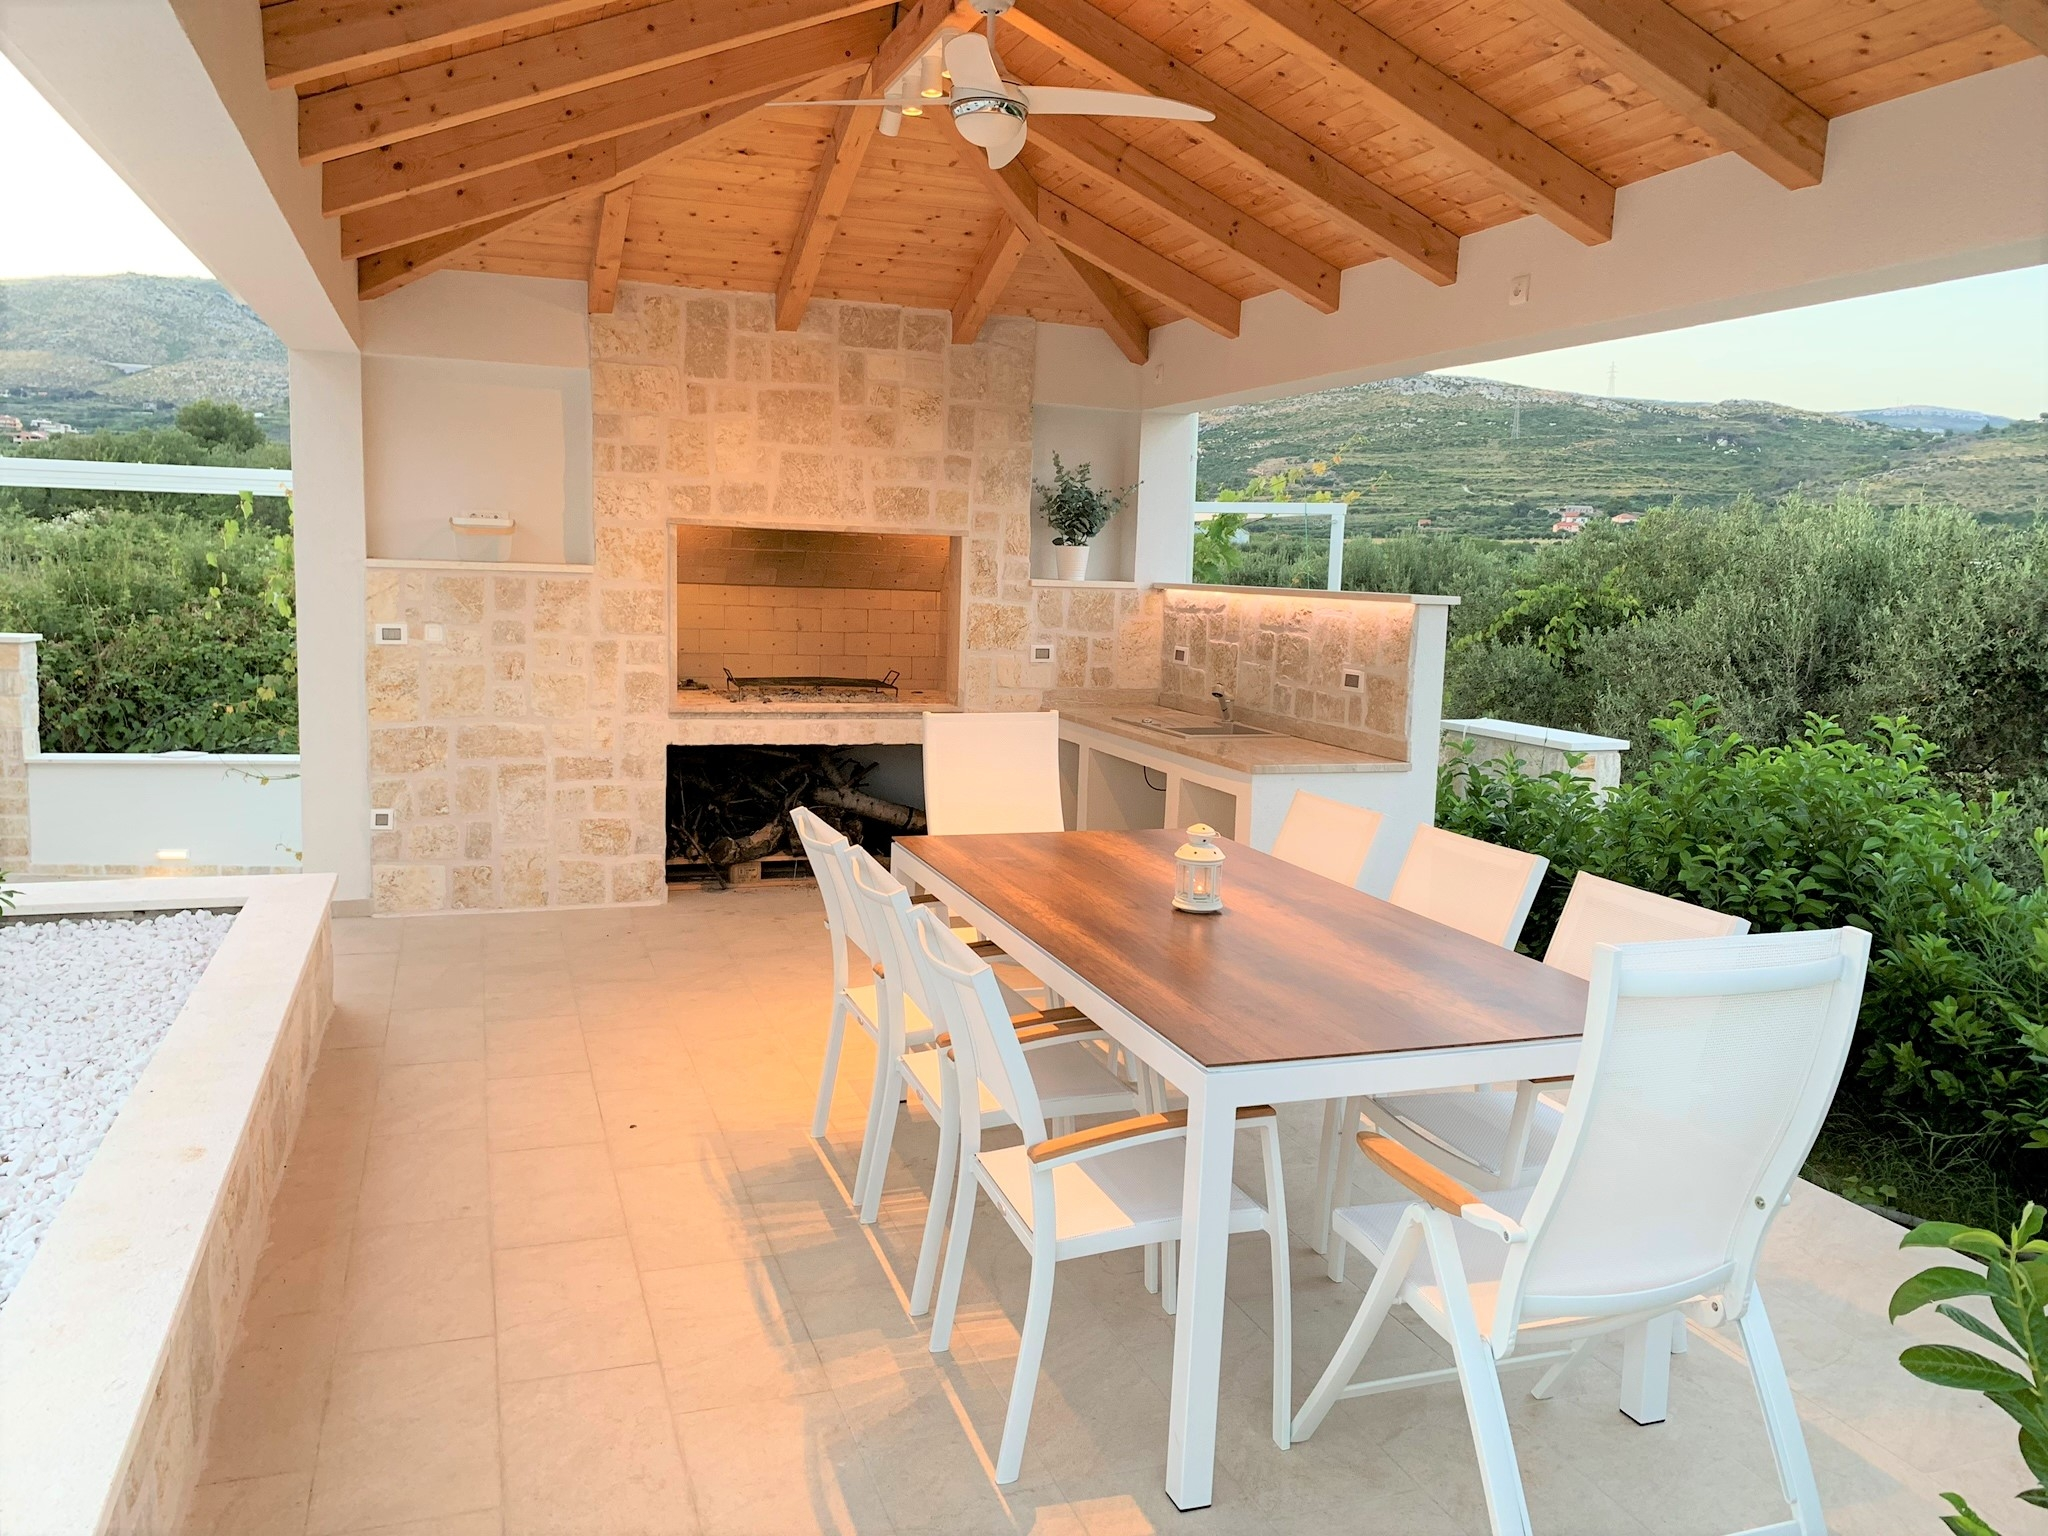 Rent Croatia holiday home in Trogir